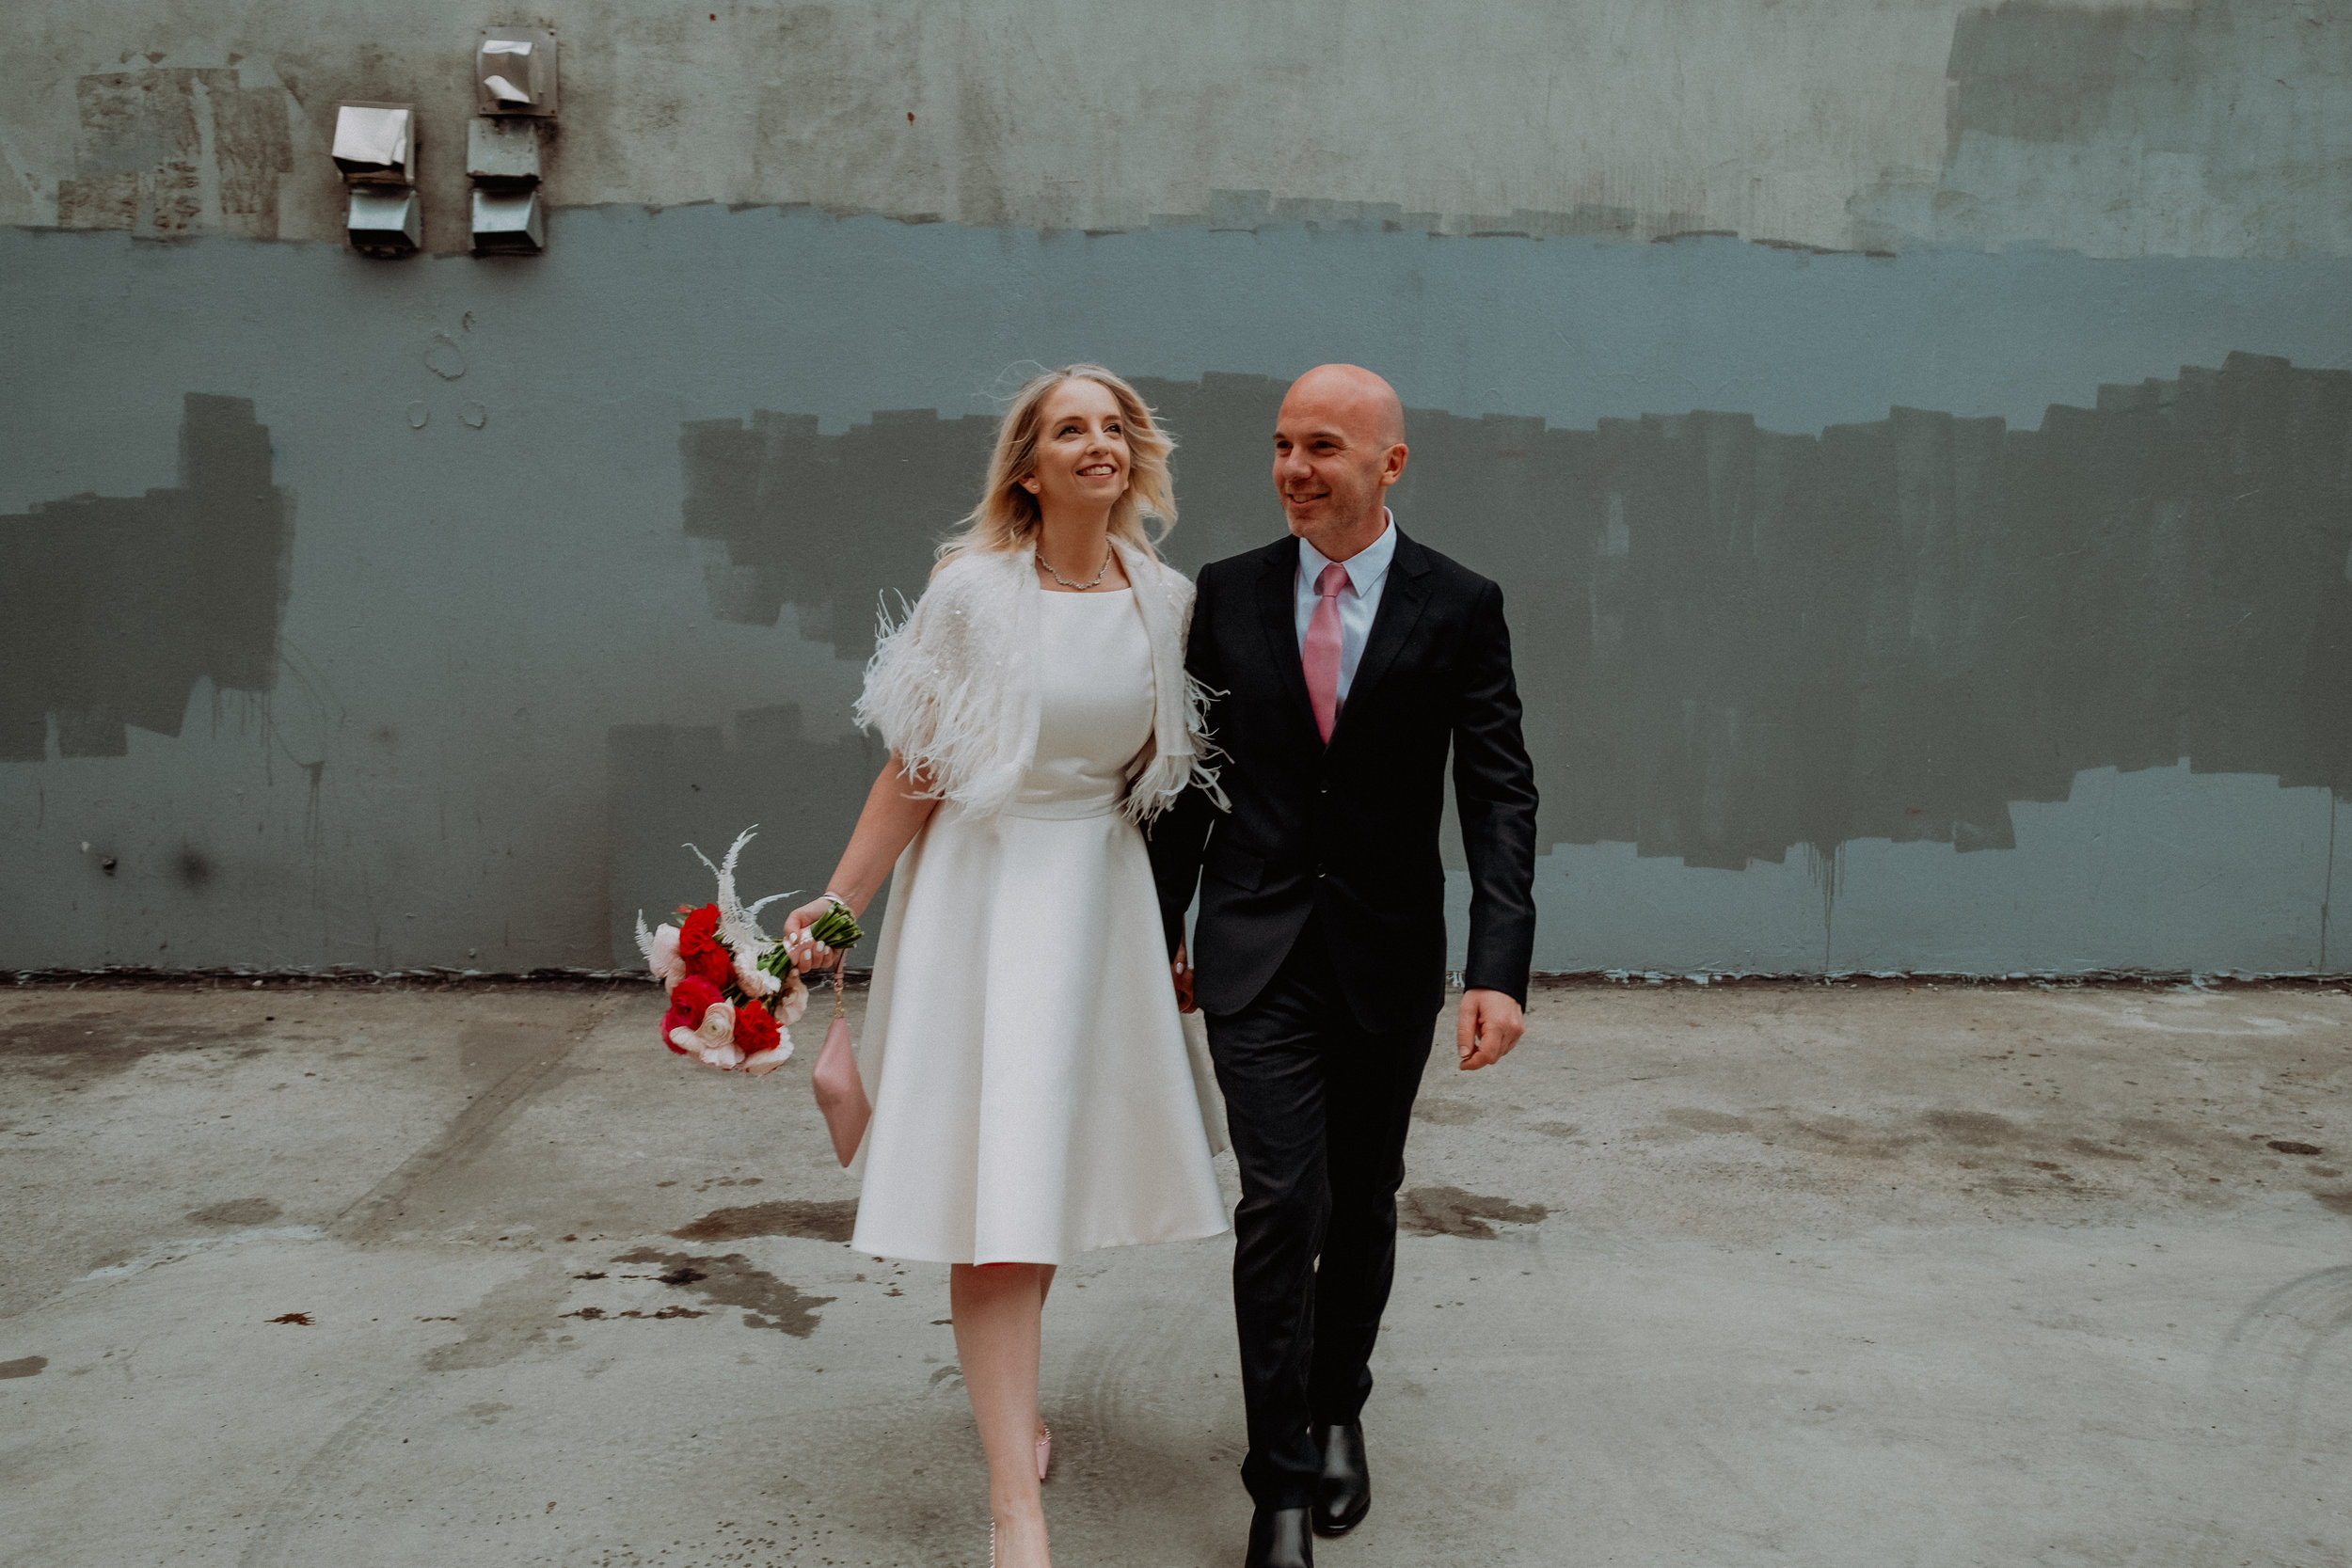 Brooklyn_City_Hall_Elopement_Photographer_Chellise_Michael_Photography230.JPG